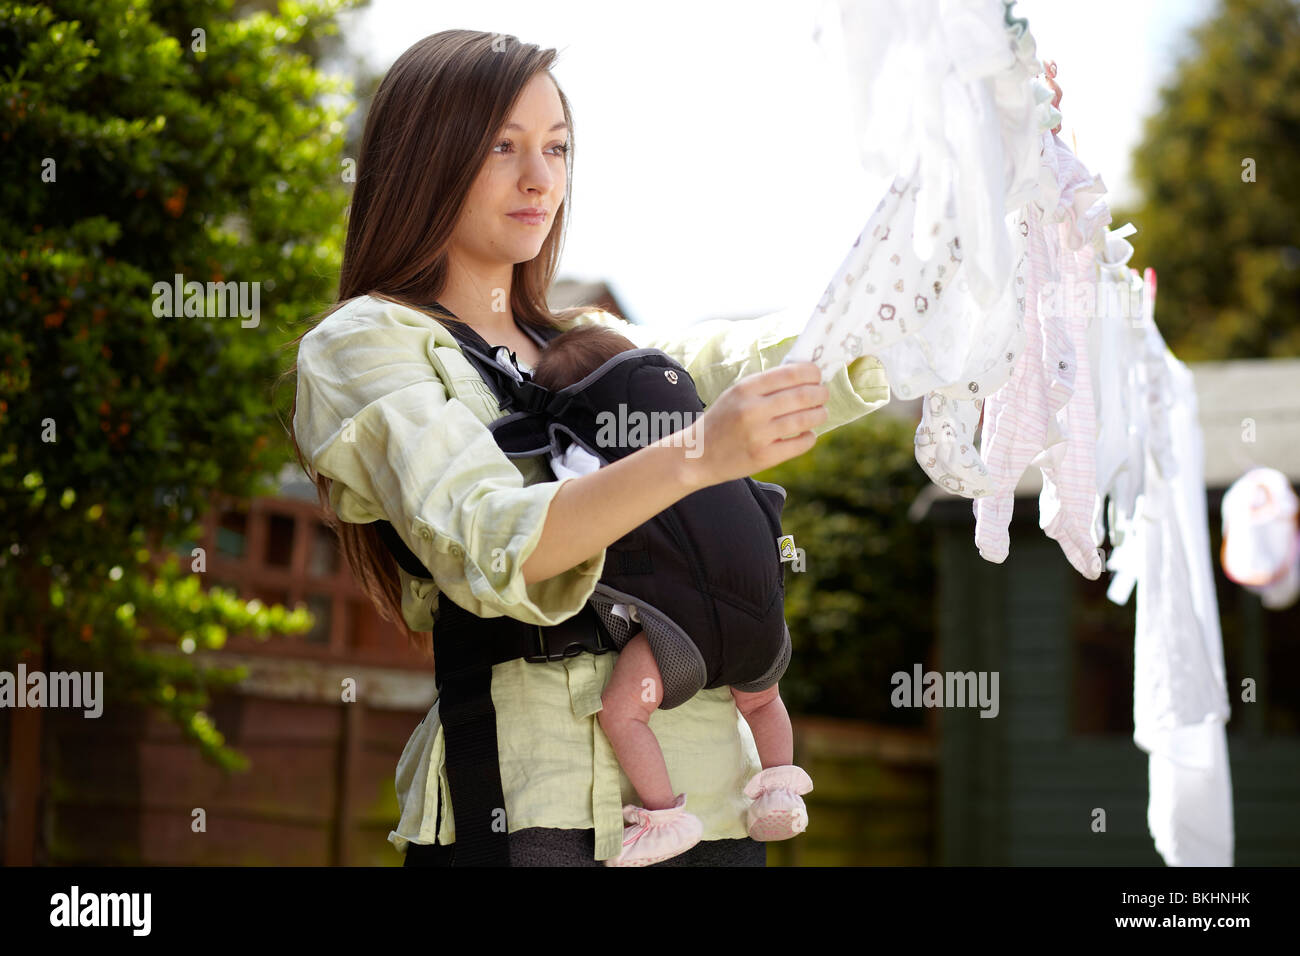 Woman with baby taking in washing from line - Stock Image